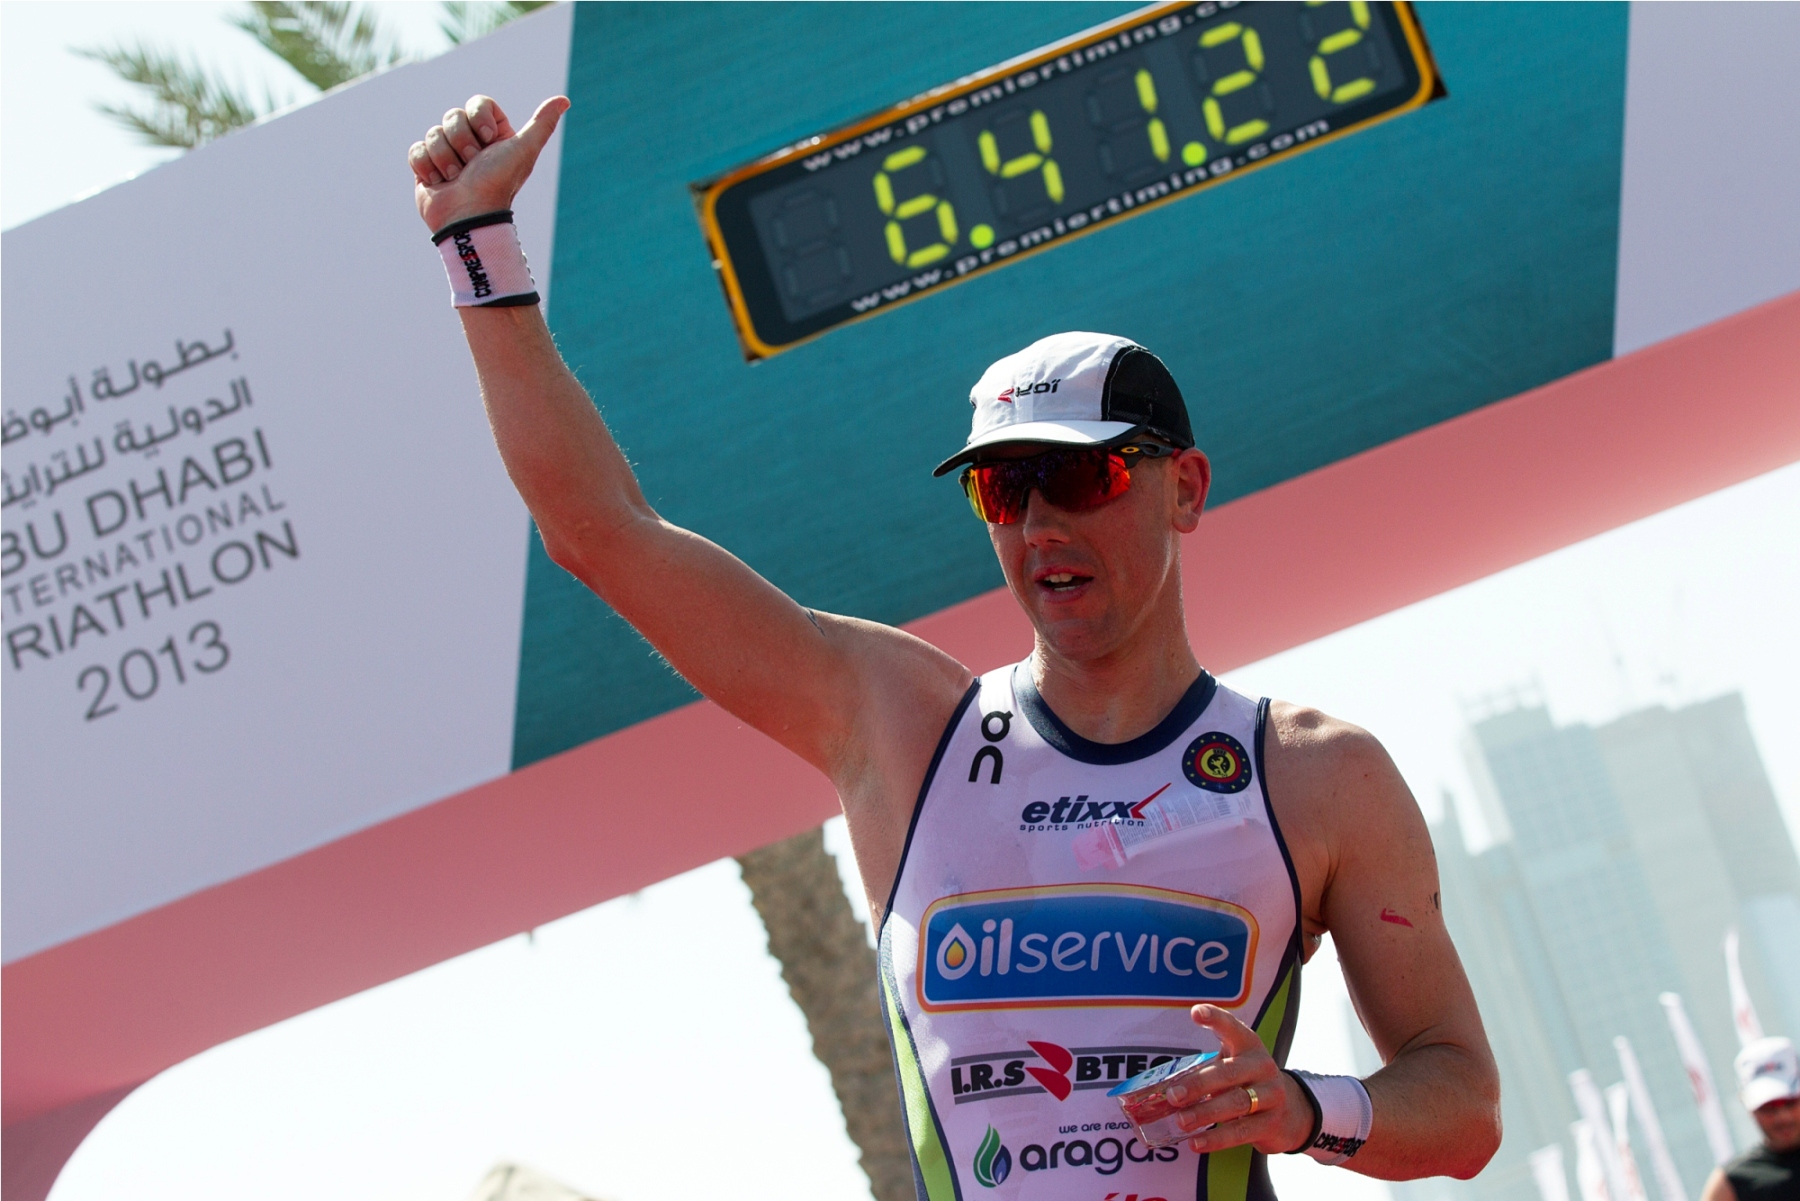 ABU DHABI INTERNATIONAL TRIATHLON  CELEBRATES FIFTH ANNIVERSARY WITH SELL OUT EVENT